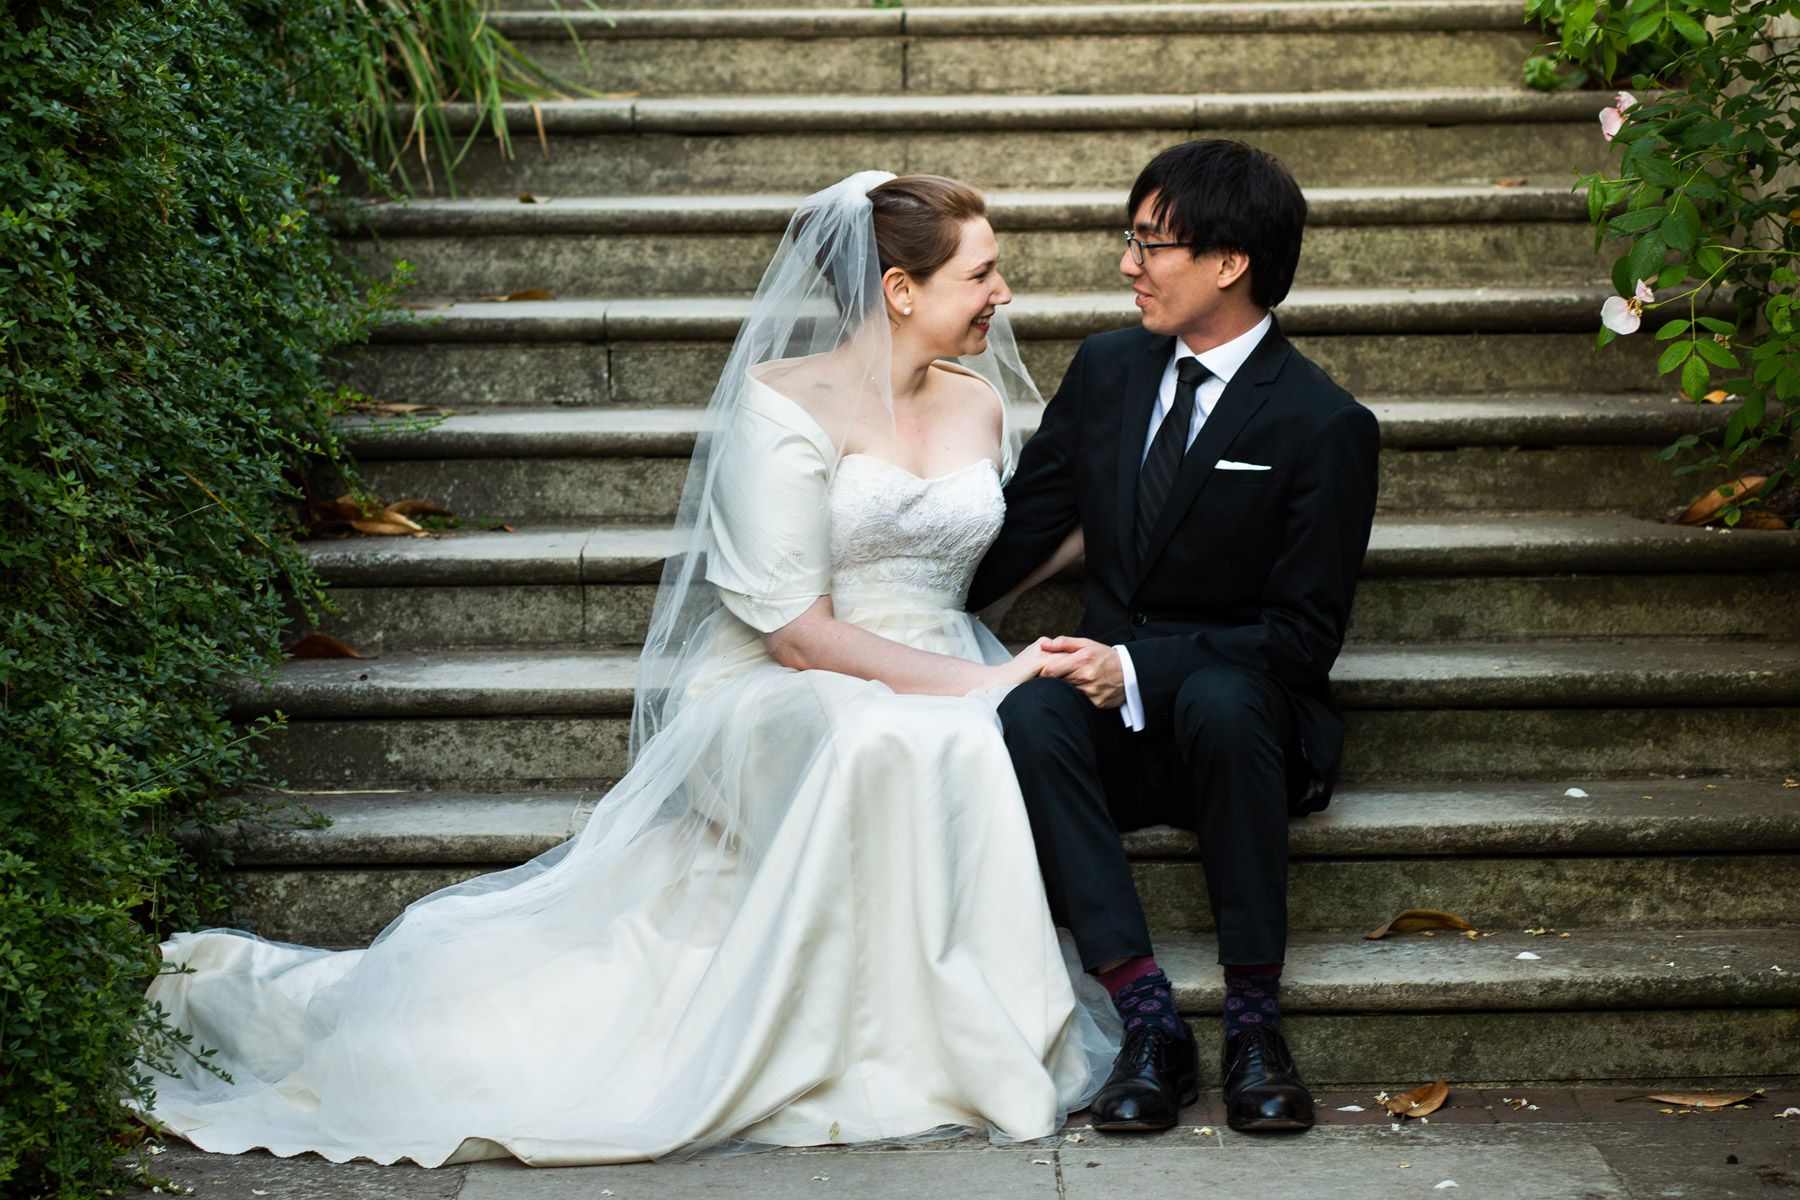 Relaxed and intimate photo of bride and groom